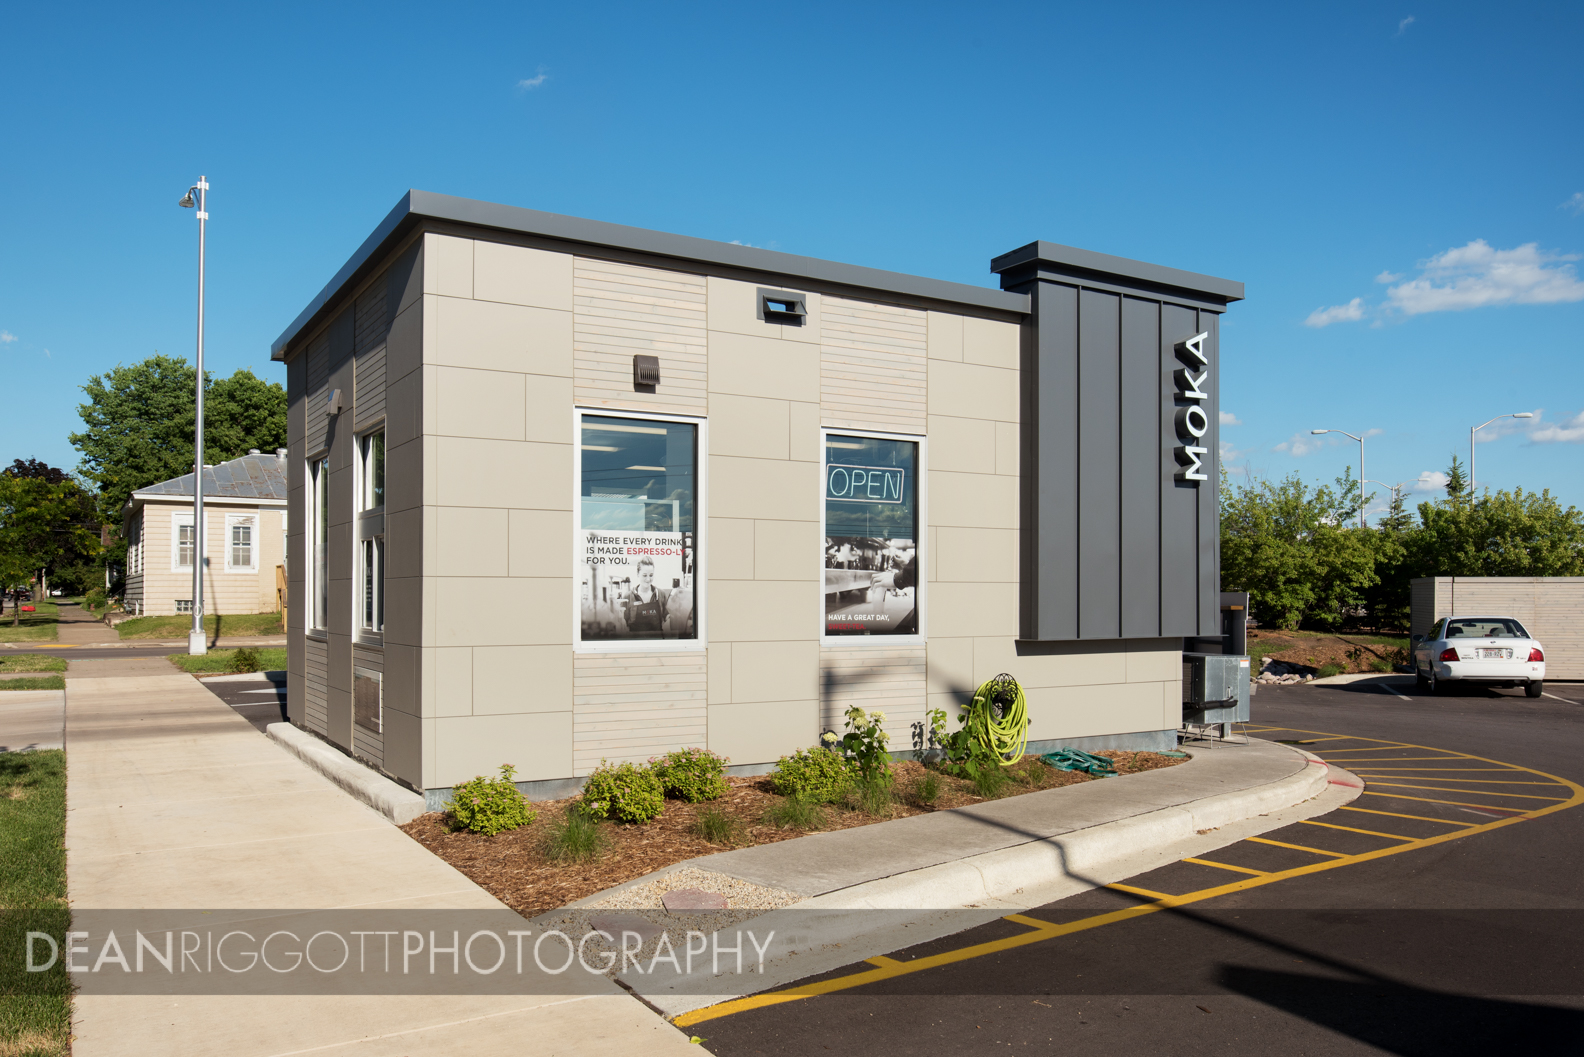 Moka Java in LaCrosee, WI, architectural photography for ISG.